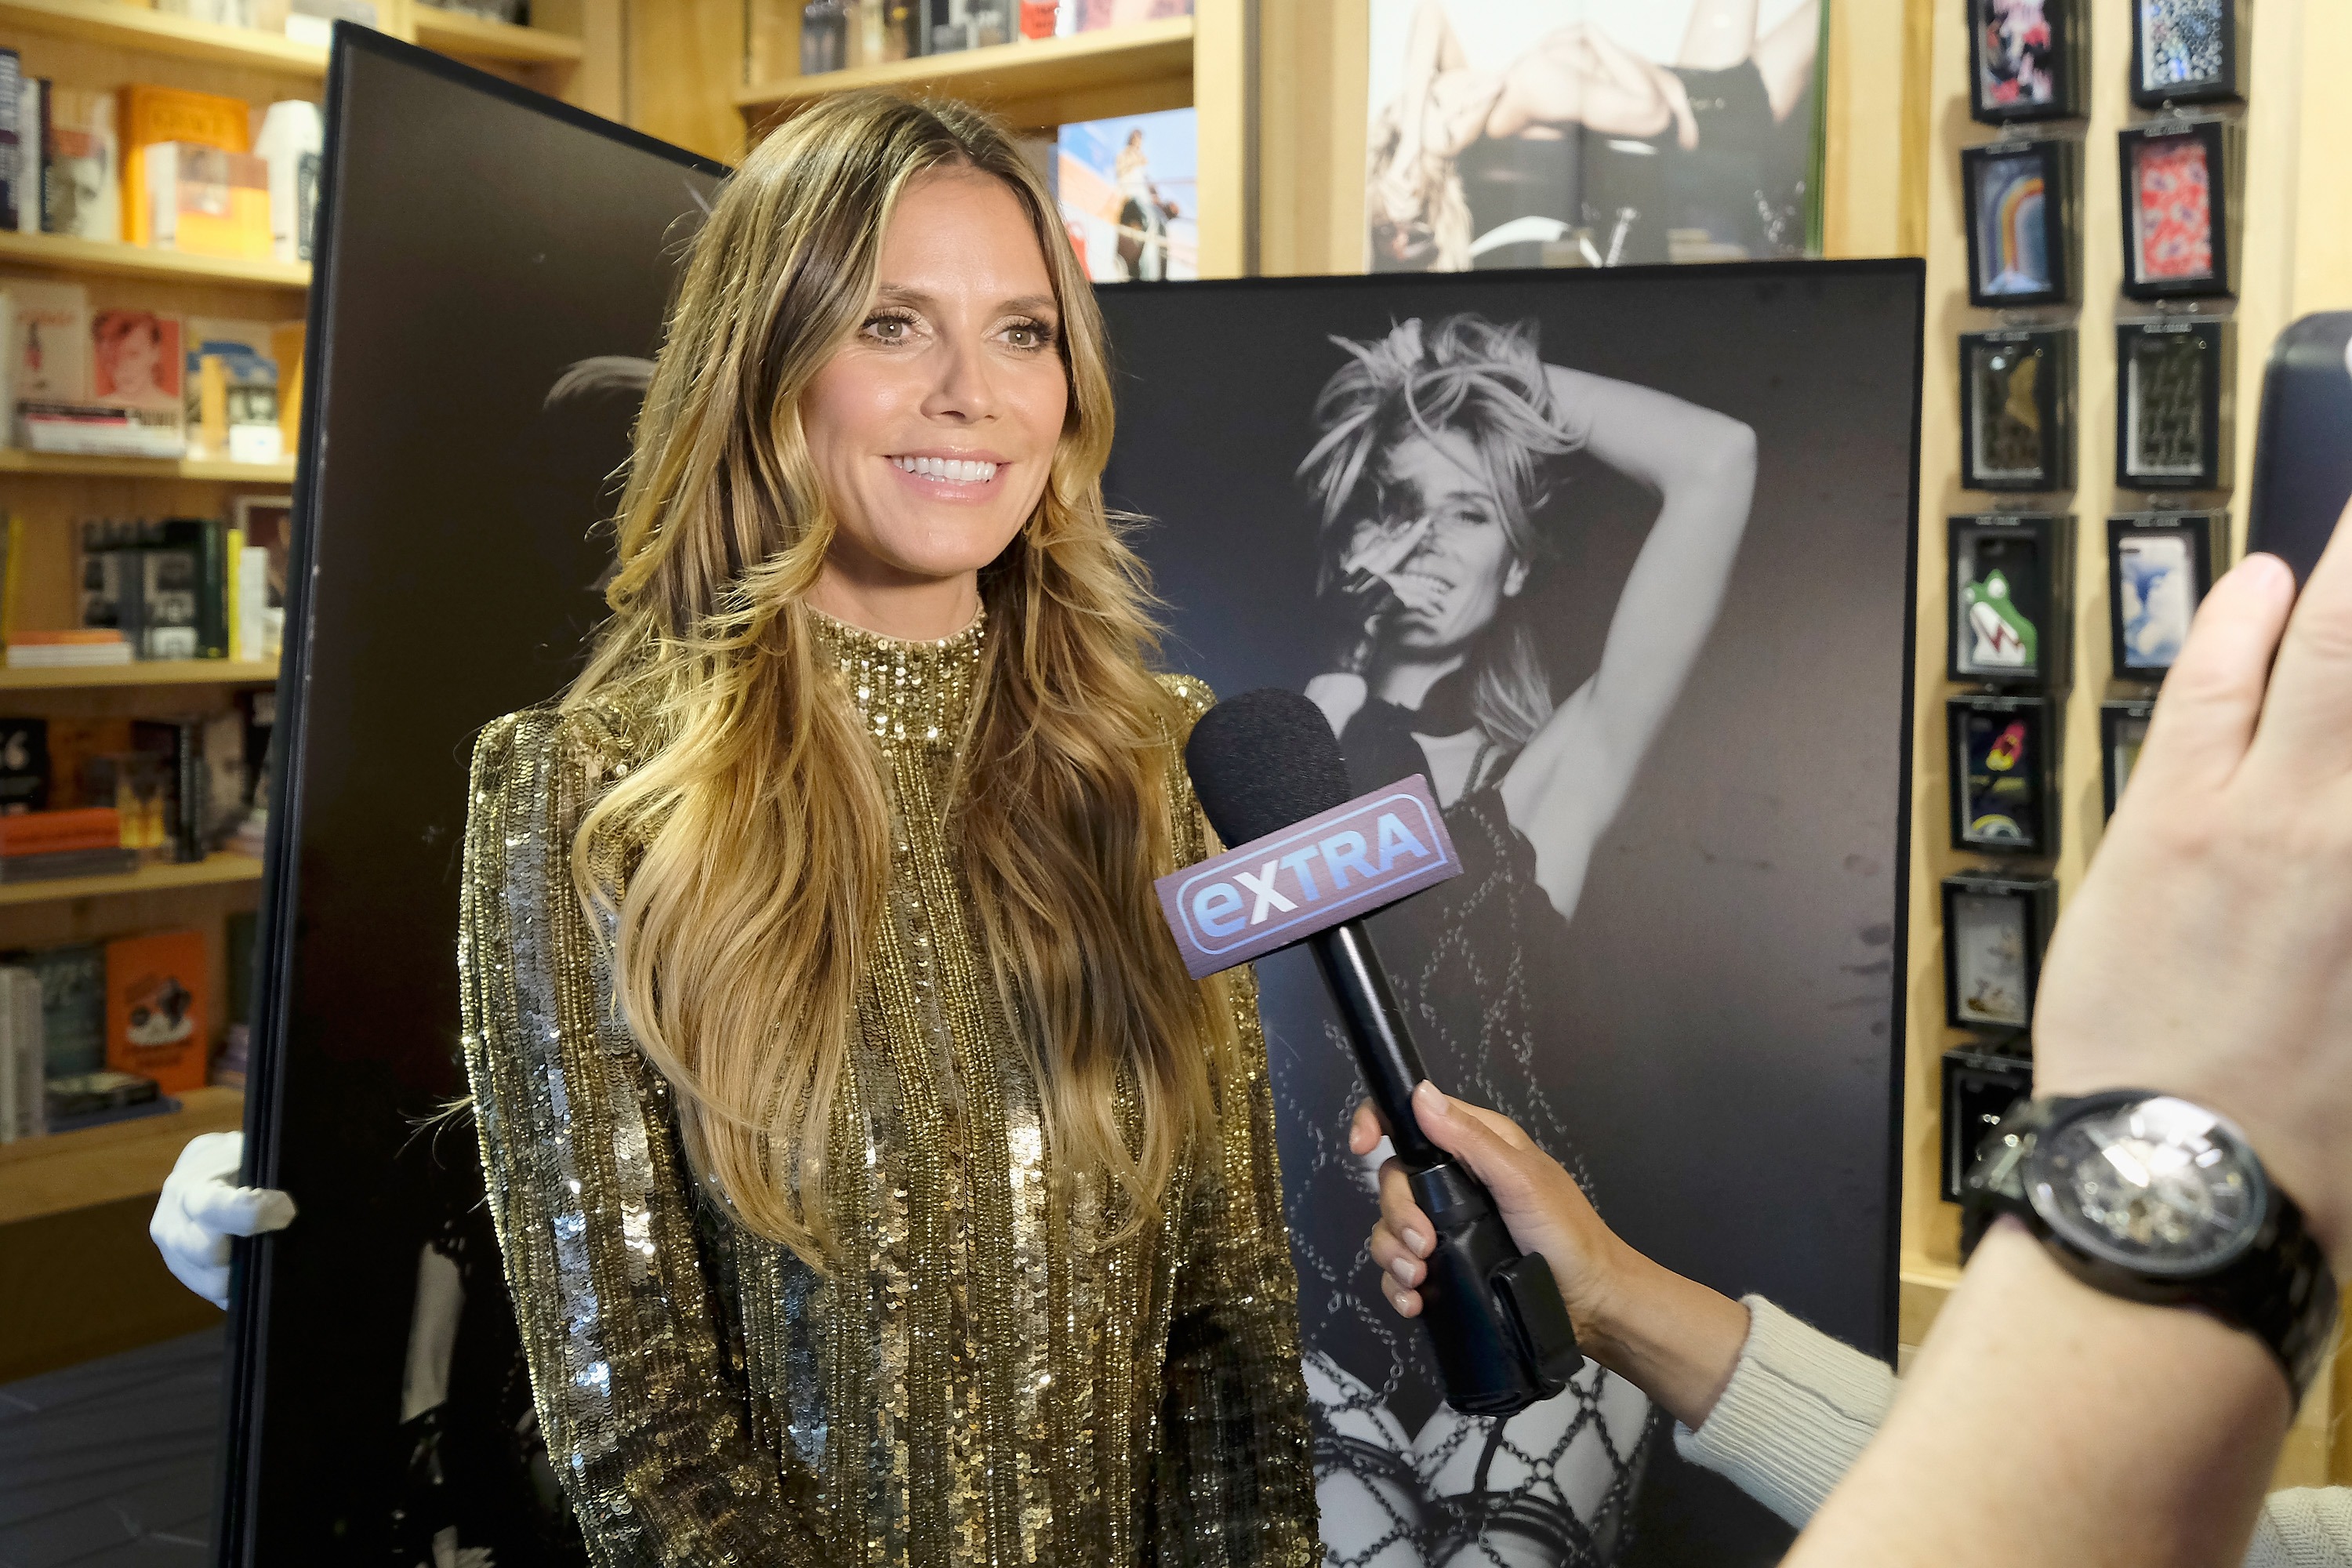 Bare chest in the office, Heidi Klum unveils her extra flat stomach